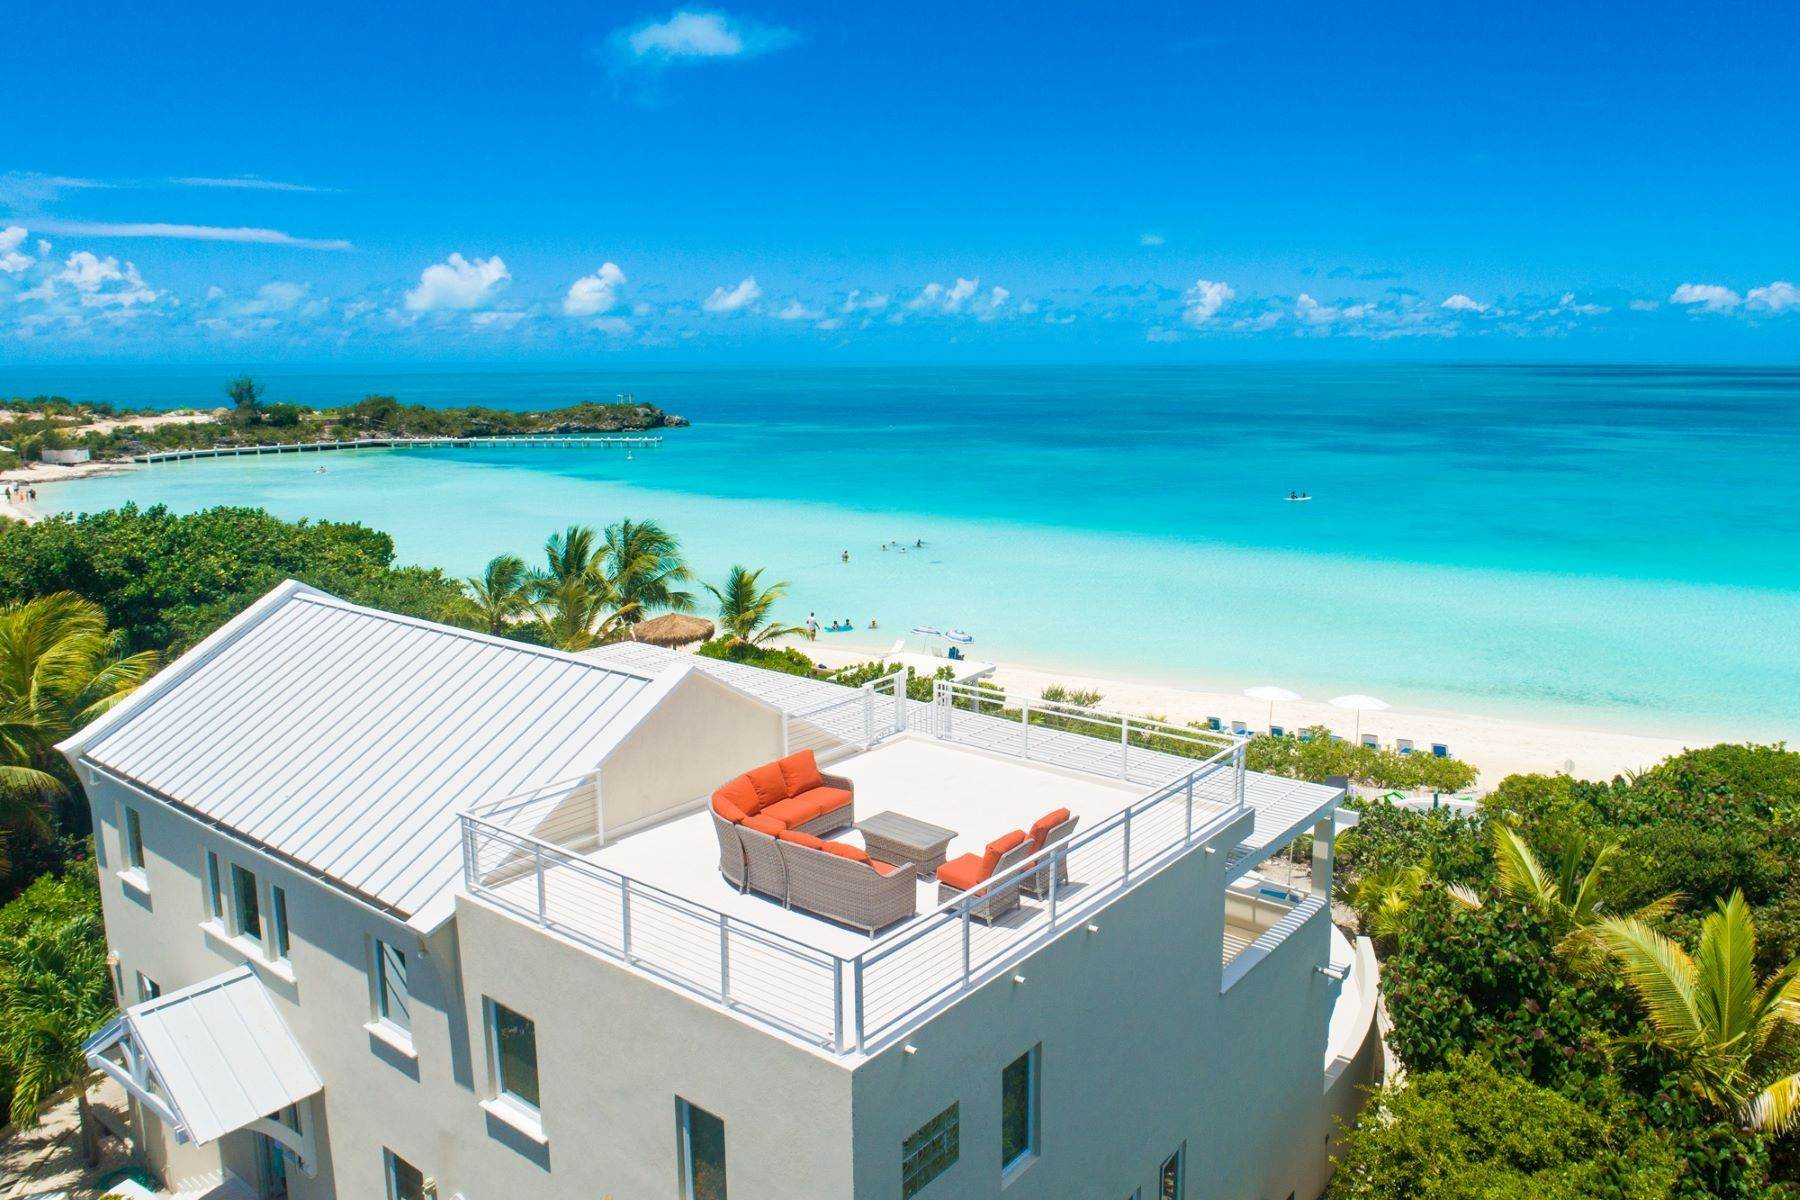 Single Family Homes for Sale at Sapodilla Bay, Providenciales Turks And Caicos Islands